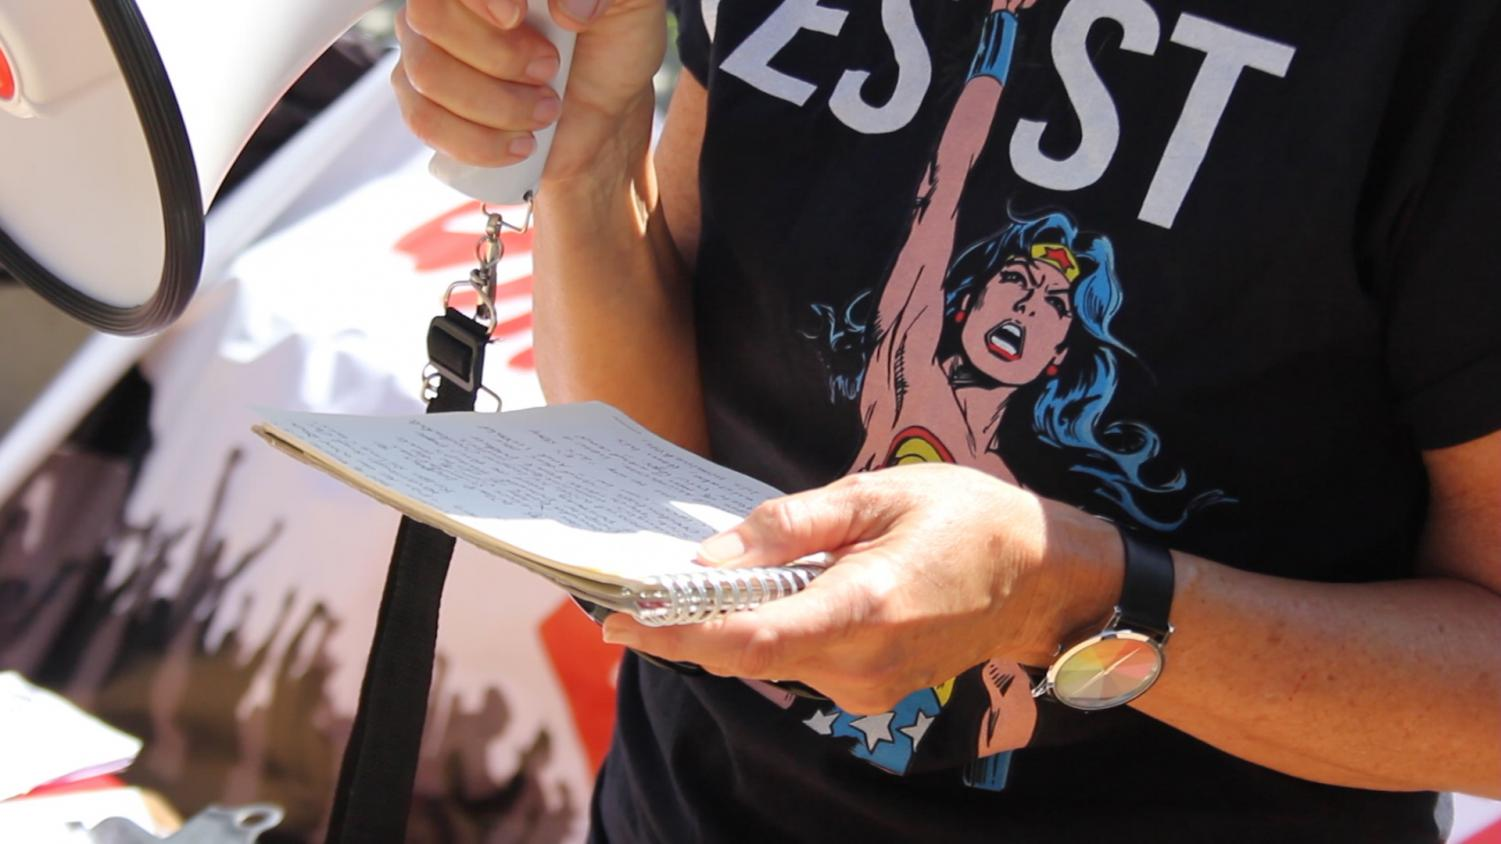 Students, faculty and community members spoke at City College protest. By Nadia Mishkin.